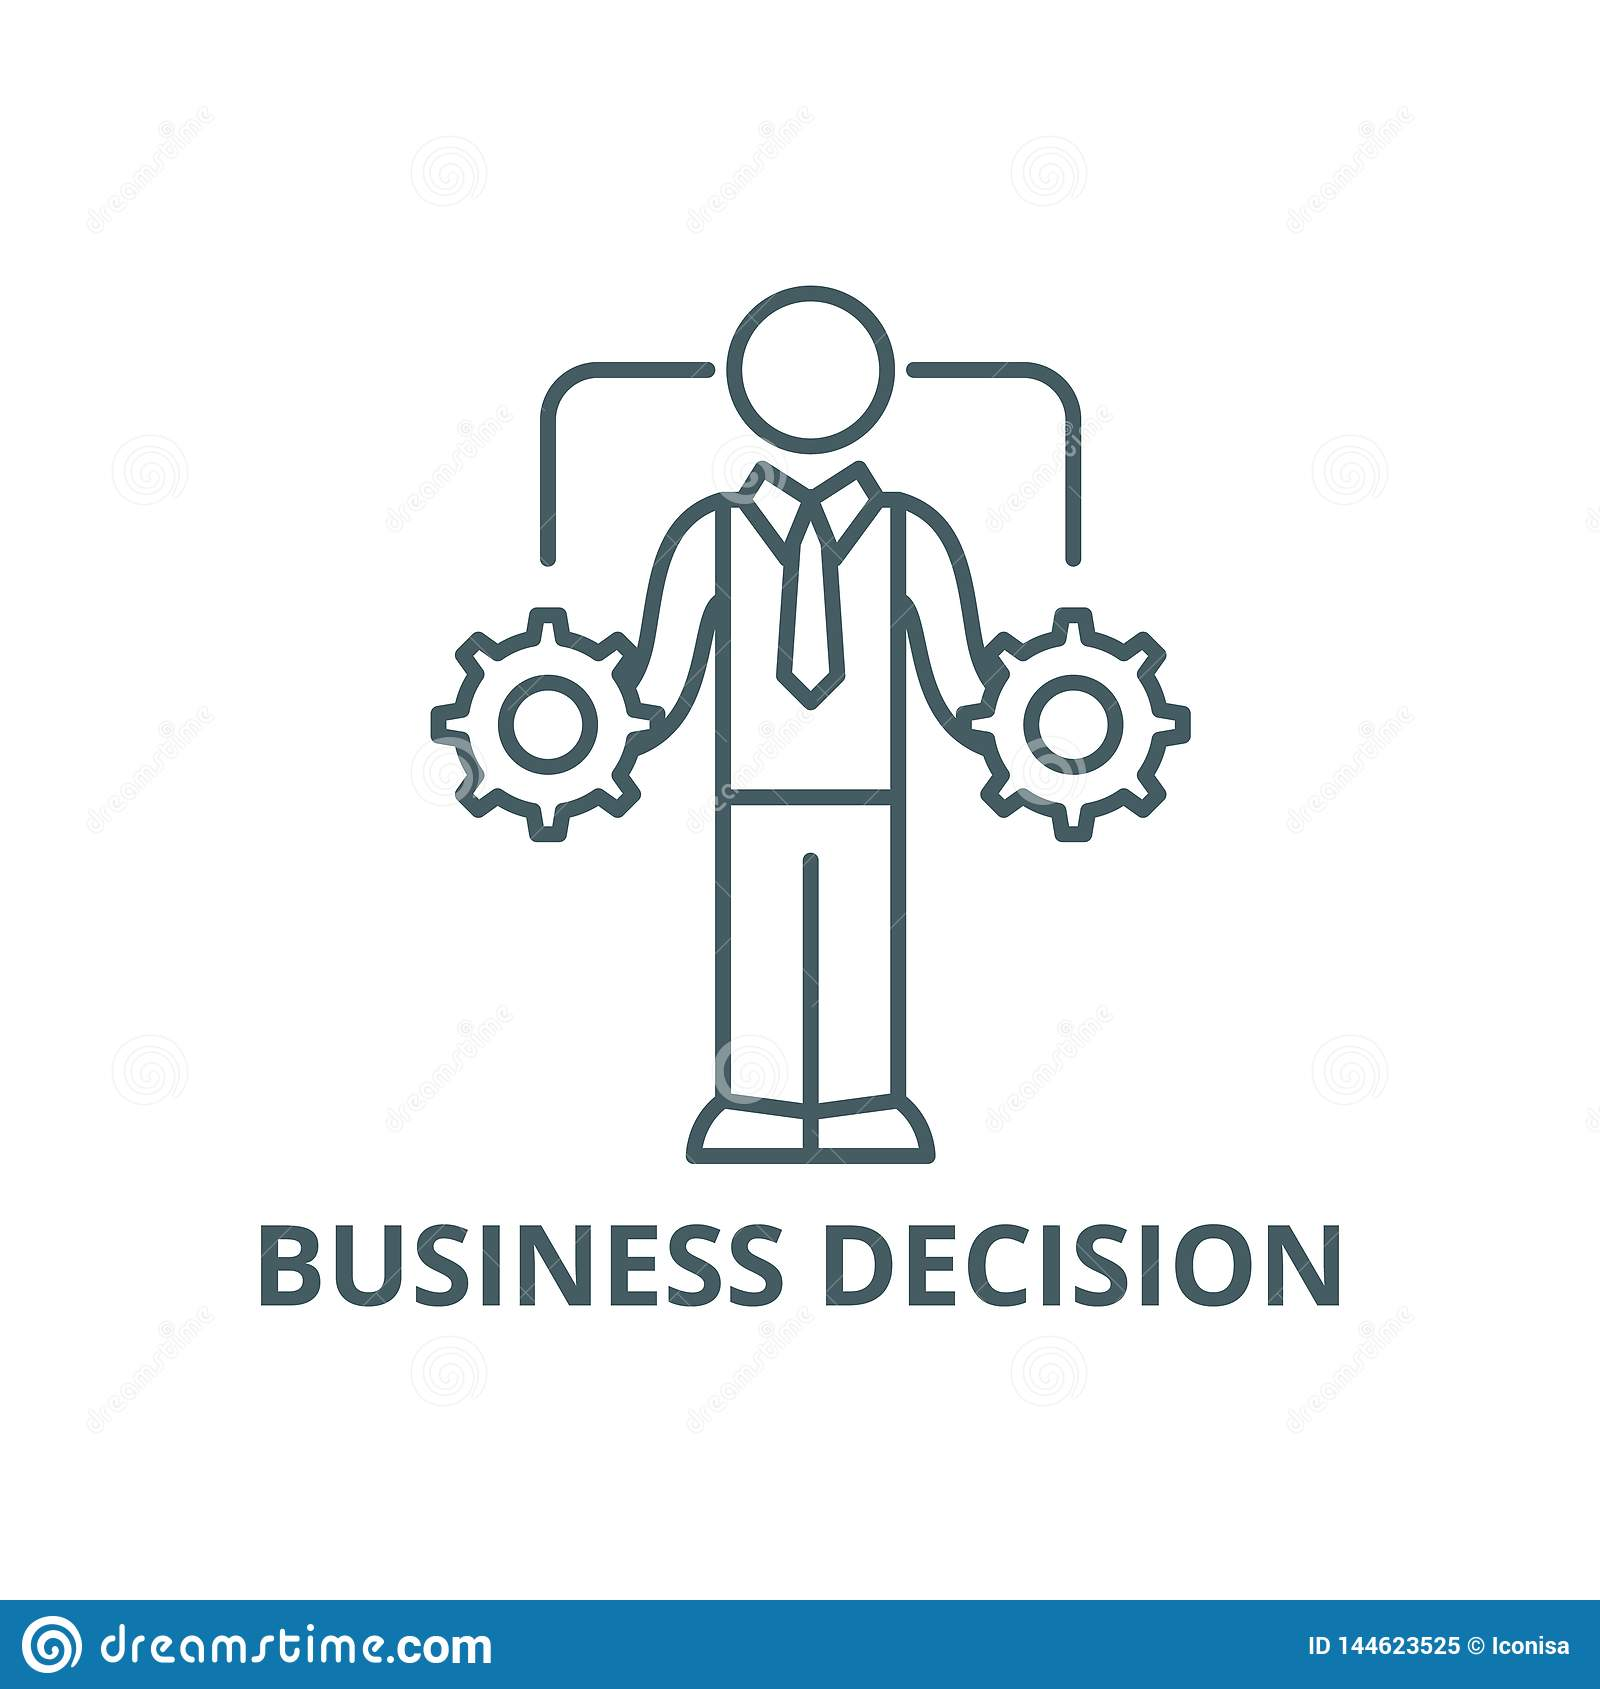 Business decision making line icon, vector. Business decision making outline sign, concept symbol, flat illustration